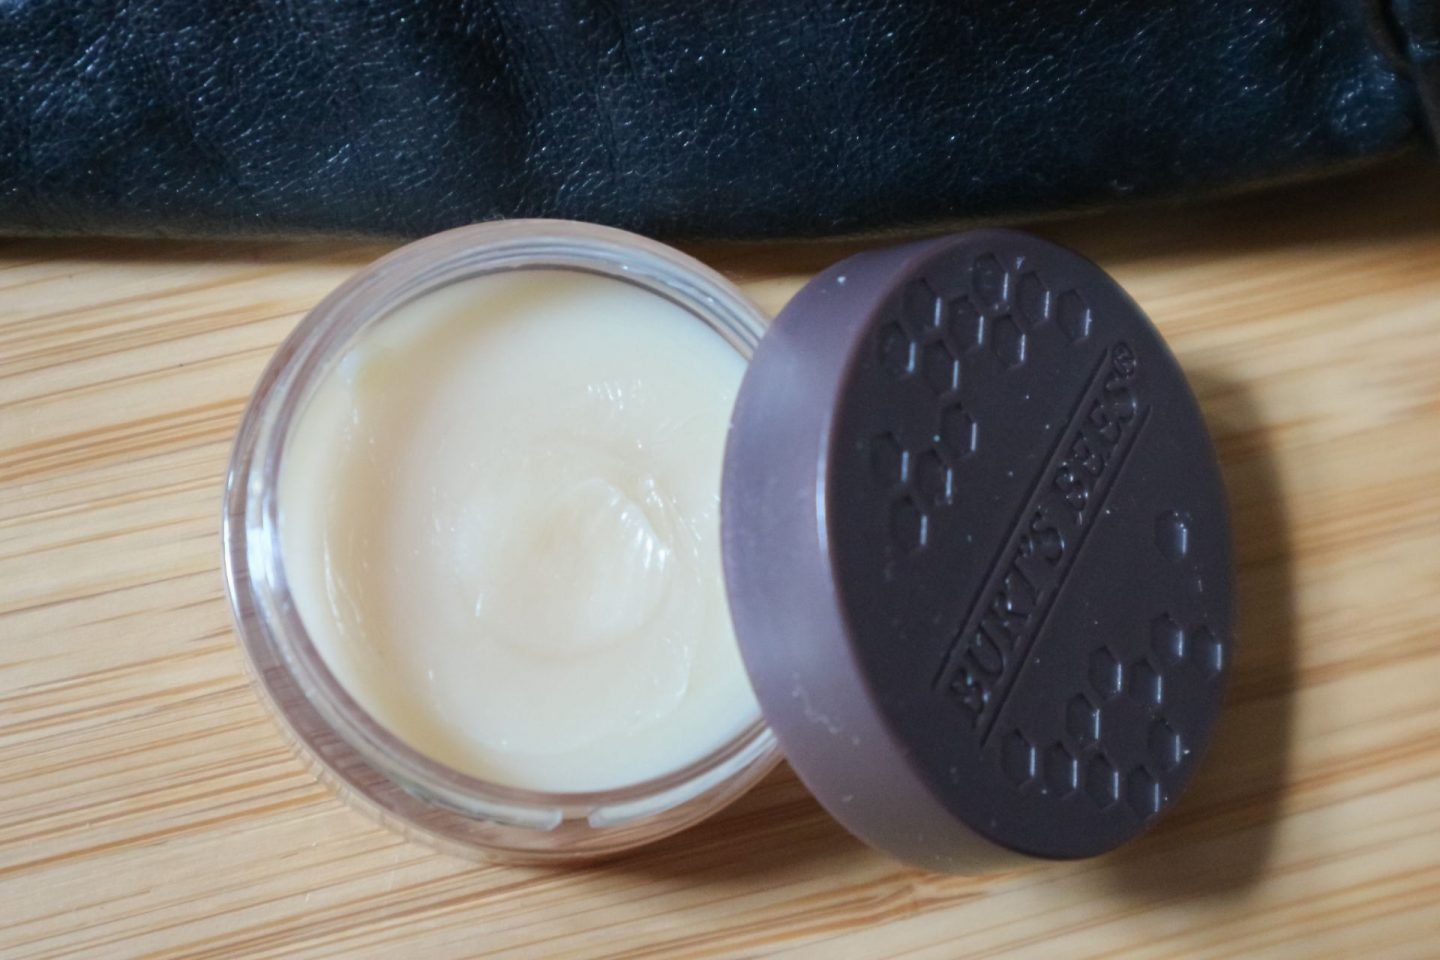 Burt's Bees Overnight Intensive Lip Treatment review